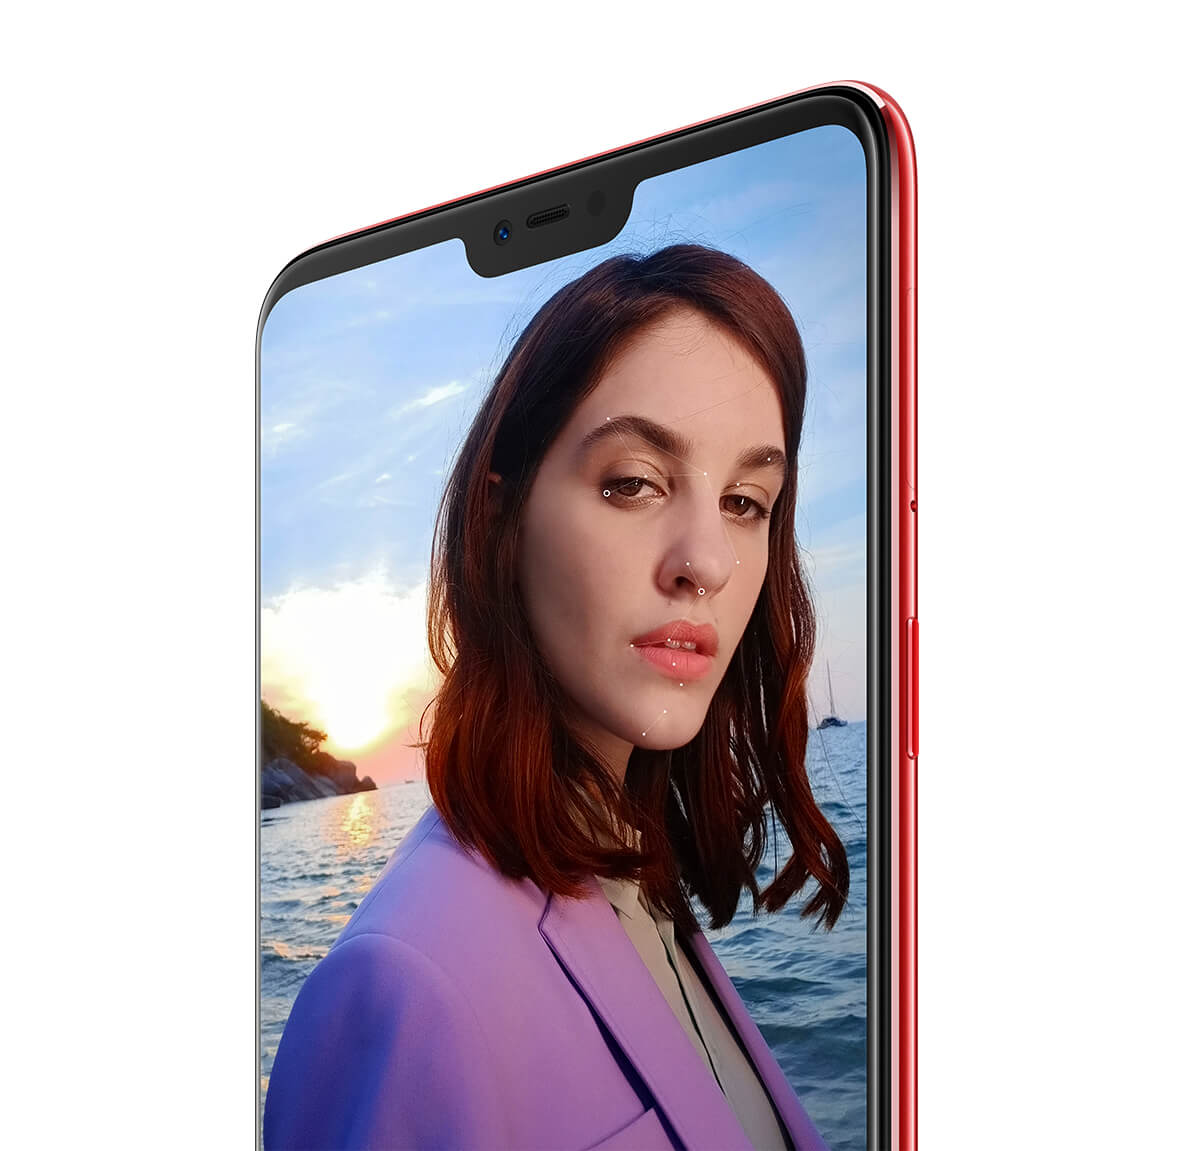 Oppo F7 : Review, Analysis, specifications and Price in India